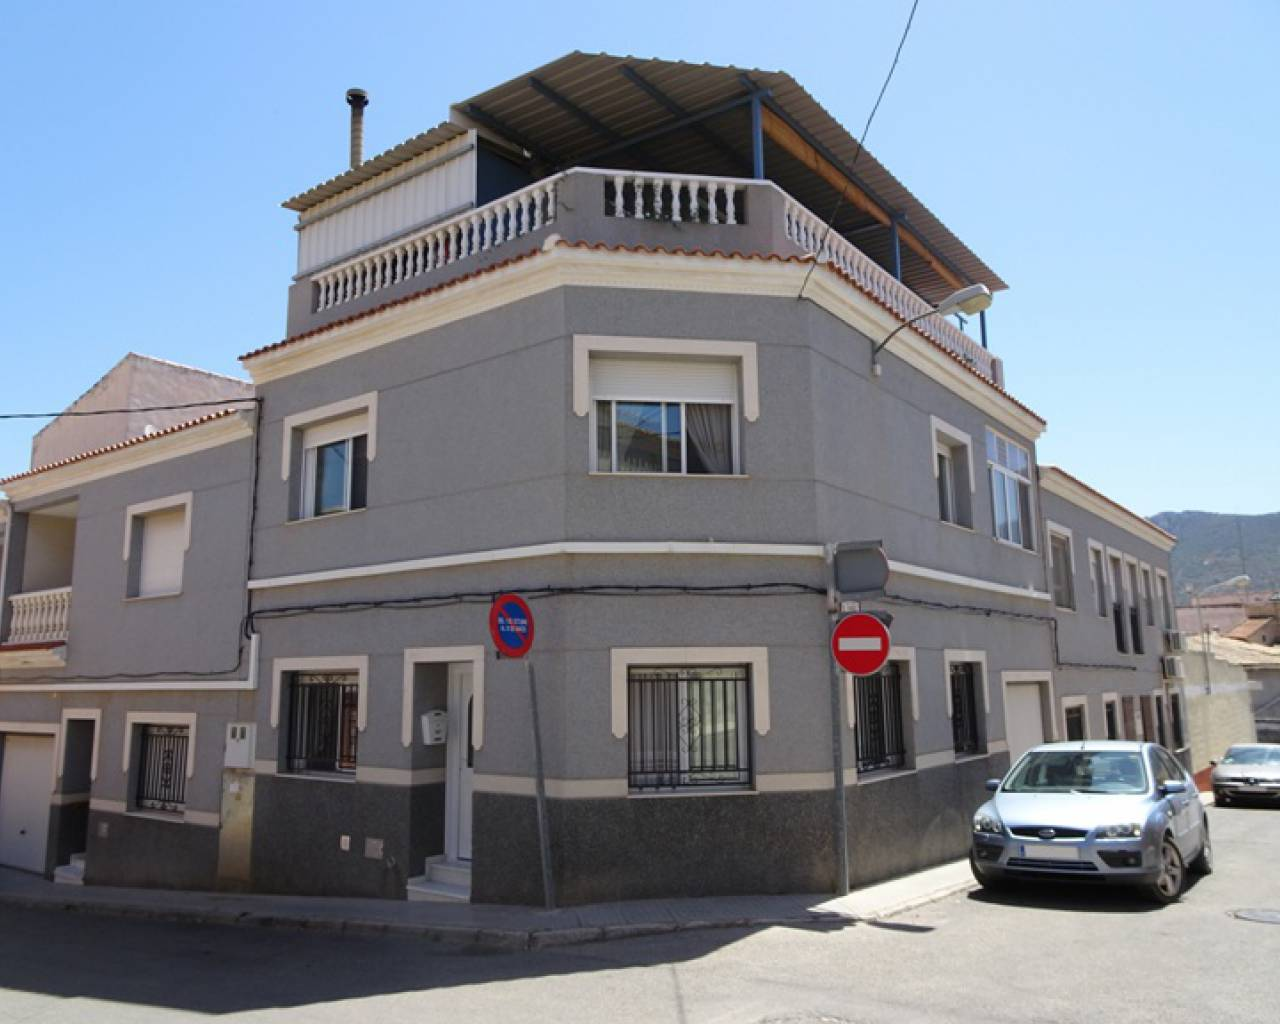 Townhouse - Sale - Hondon - Hondon de Las Nieves